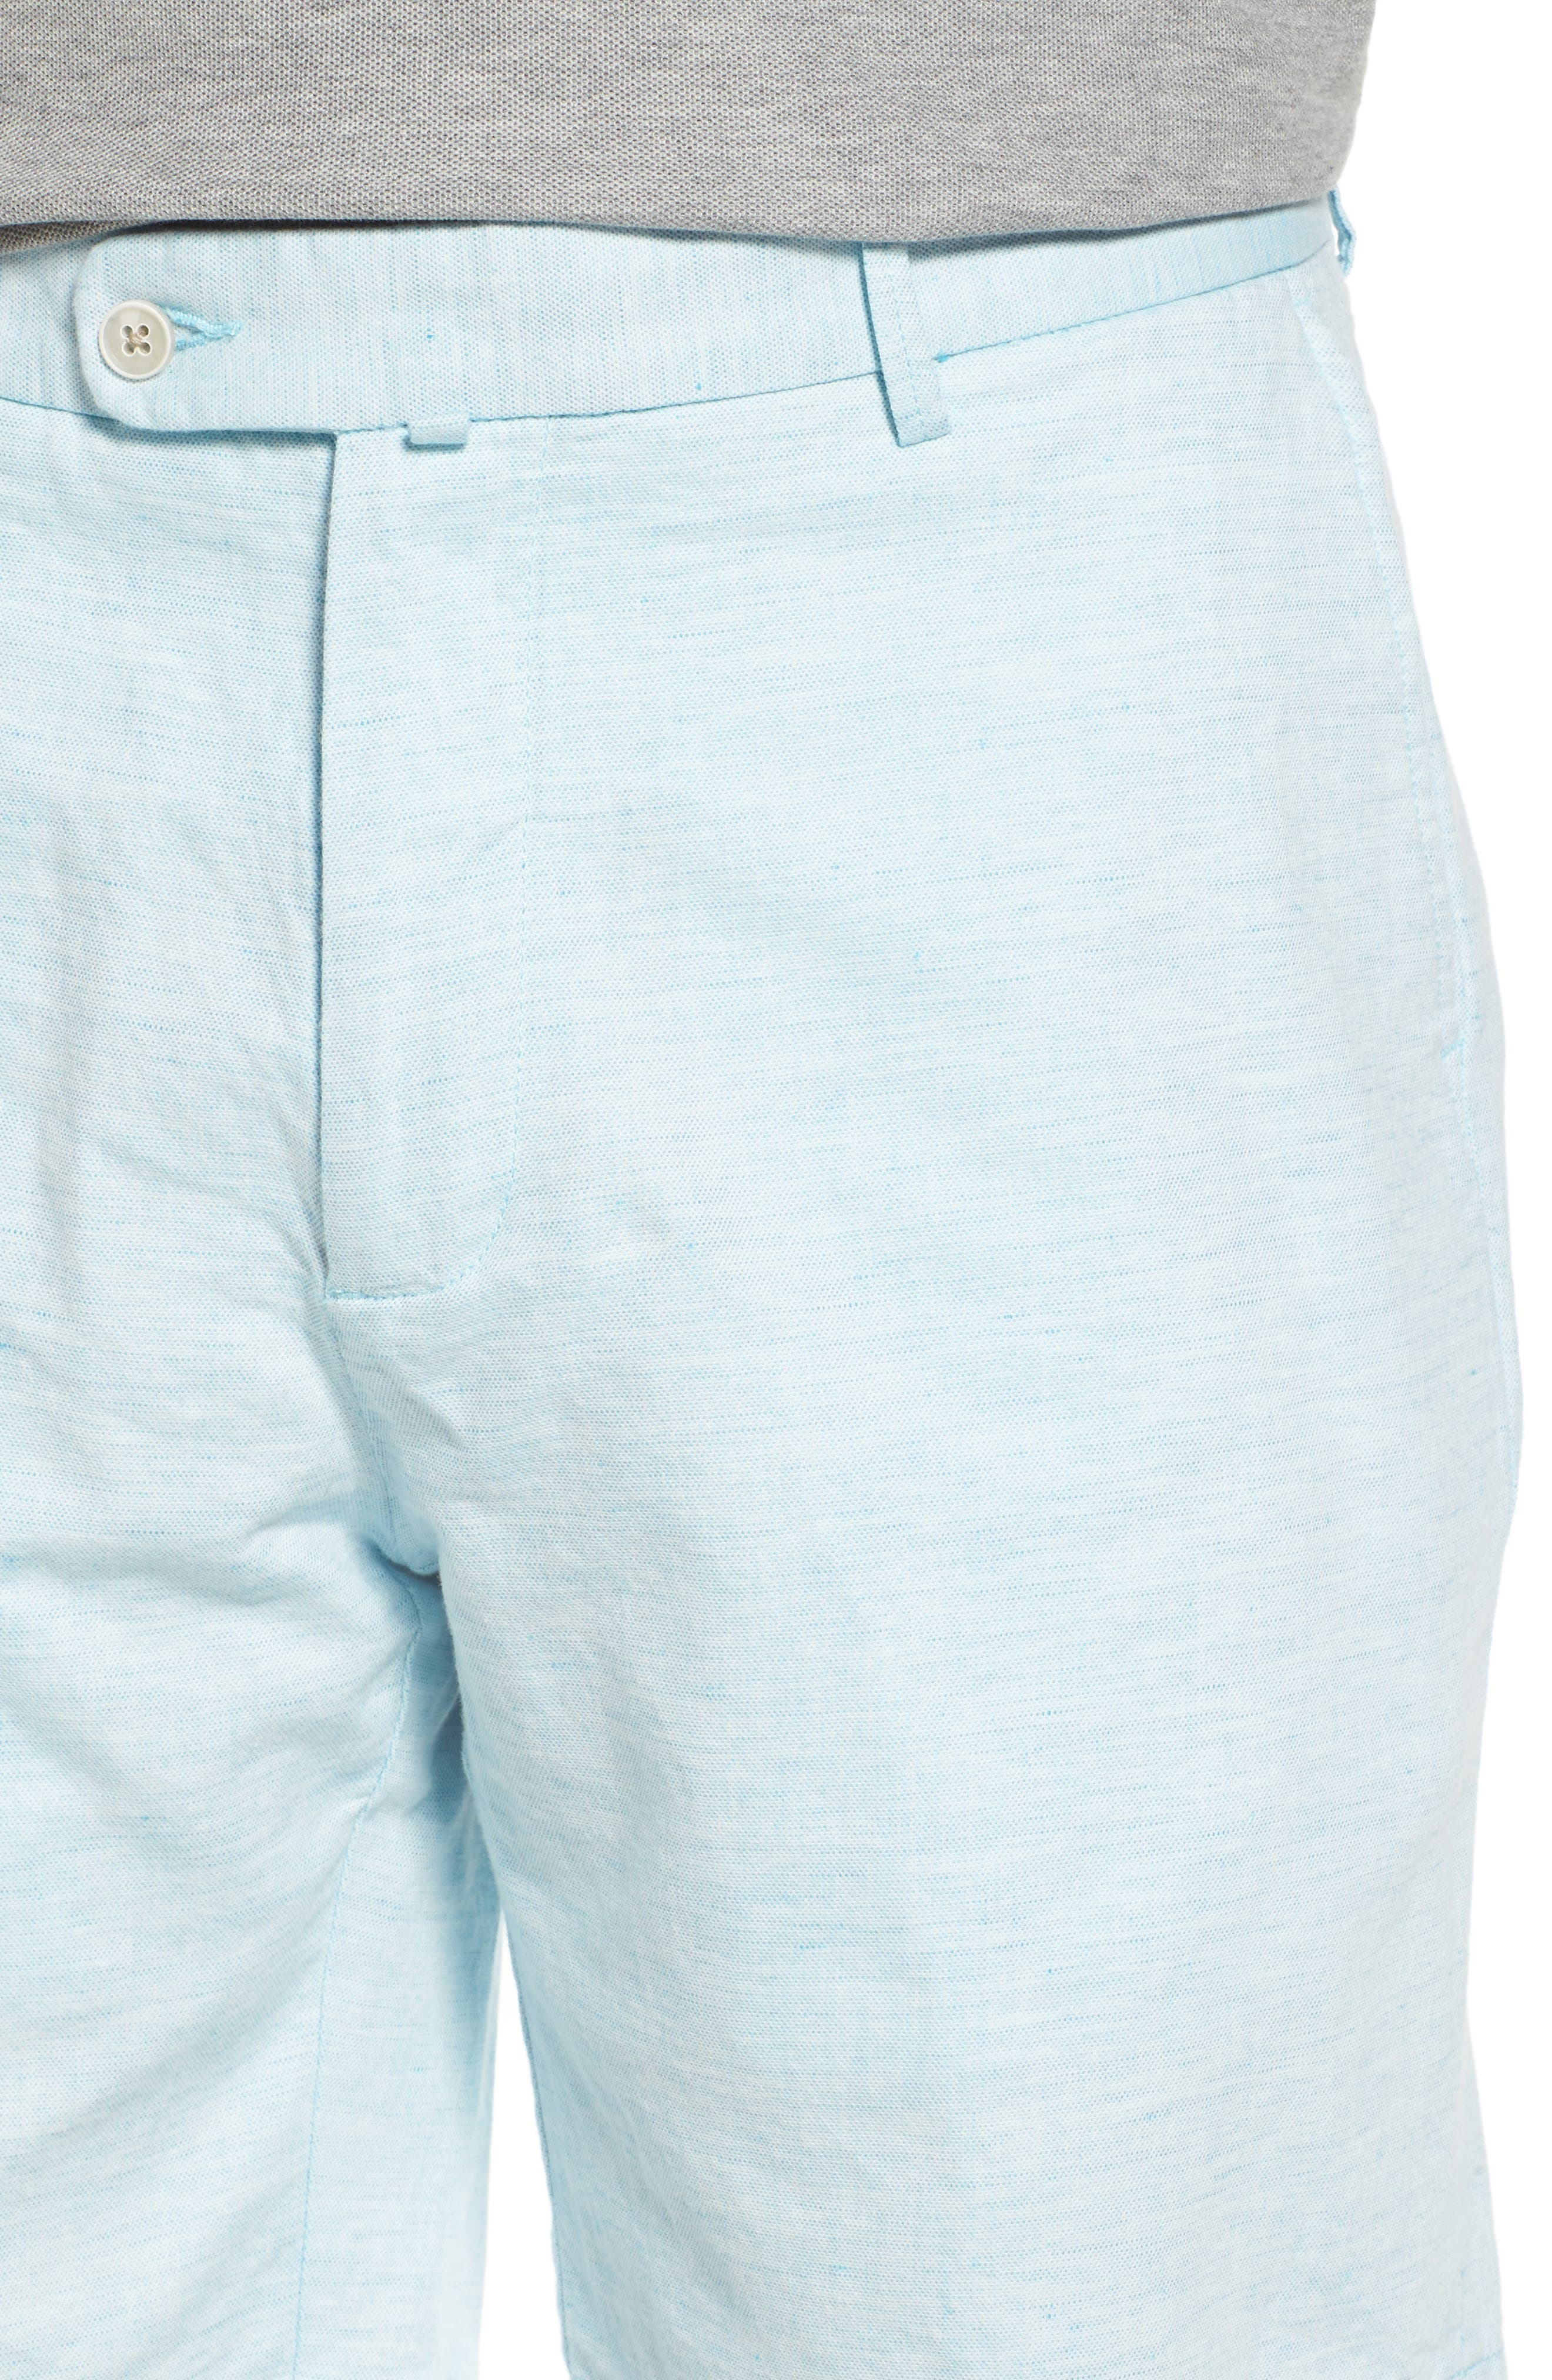 Crown Cool Delave Flat Front Shorts,                             Alternate thumbnail 4, color,                             Grotto Blue